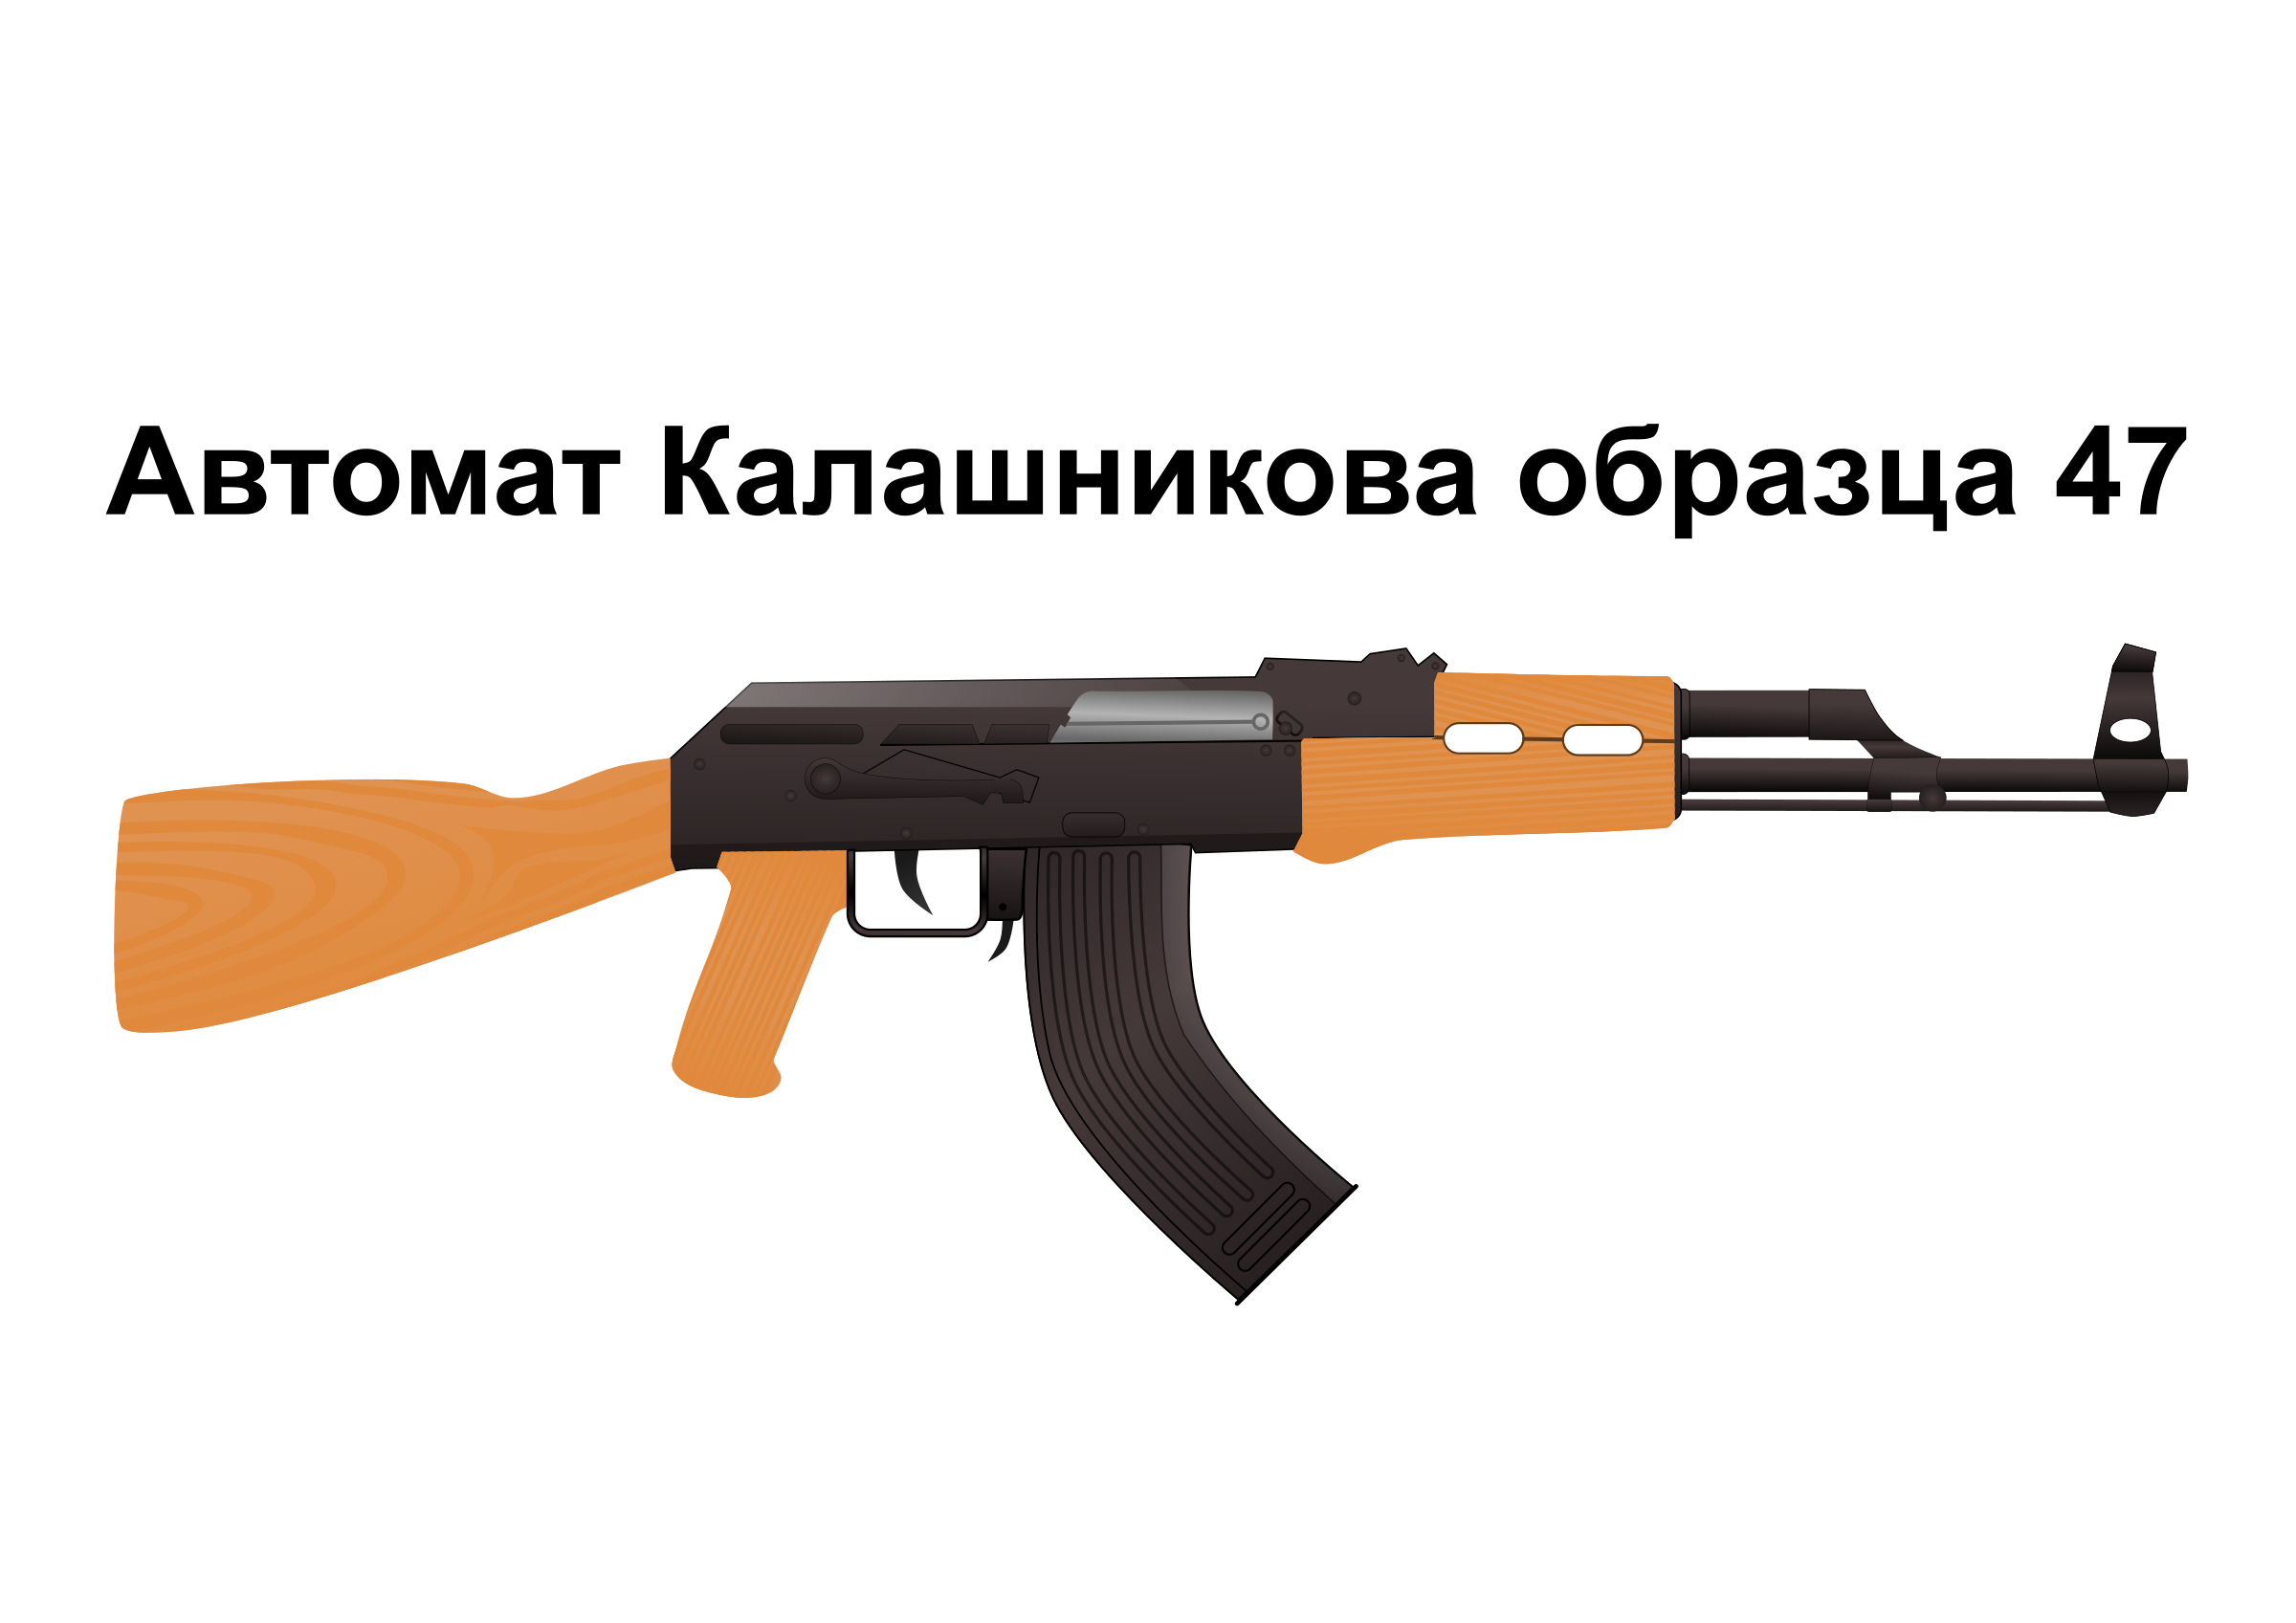 AK47 Assault Rifle by gnokii